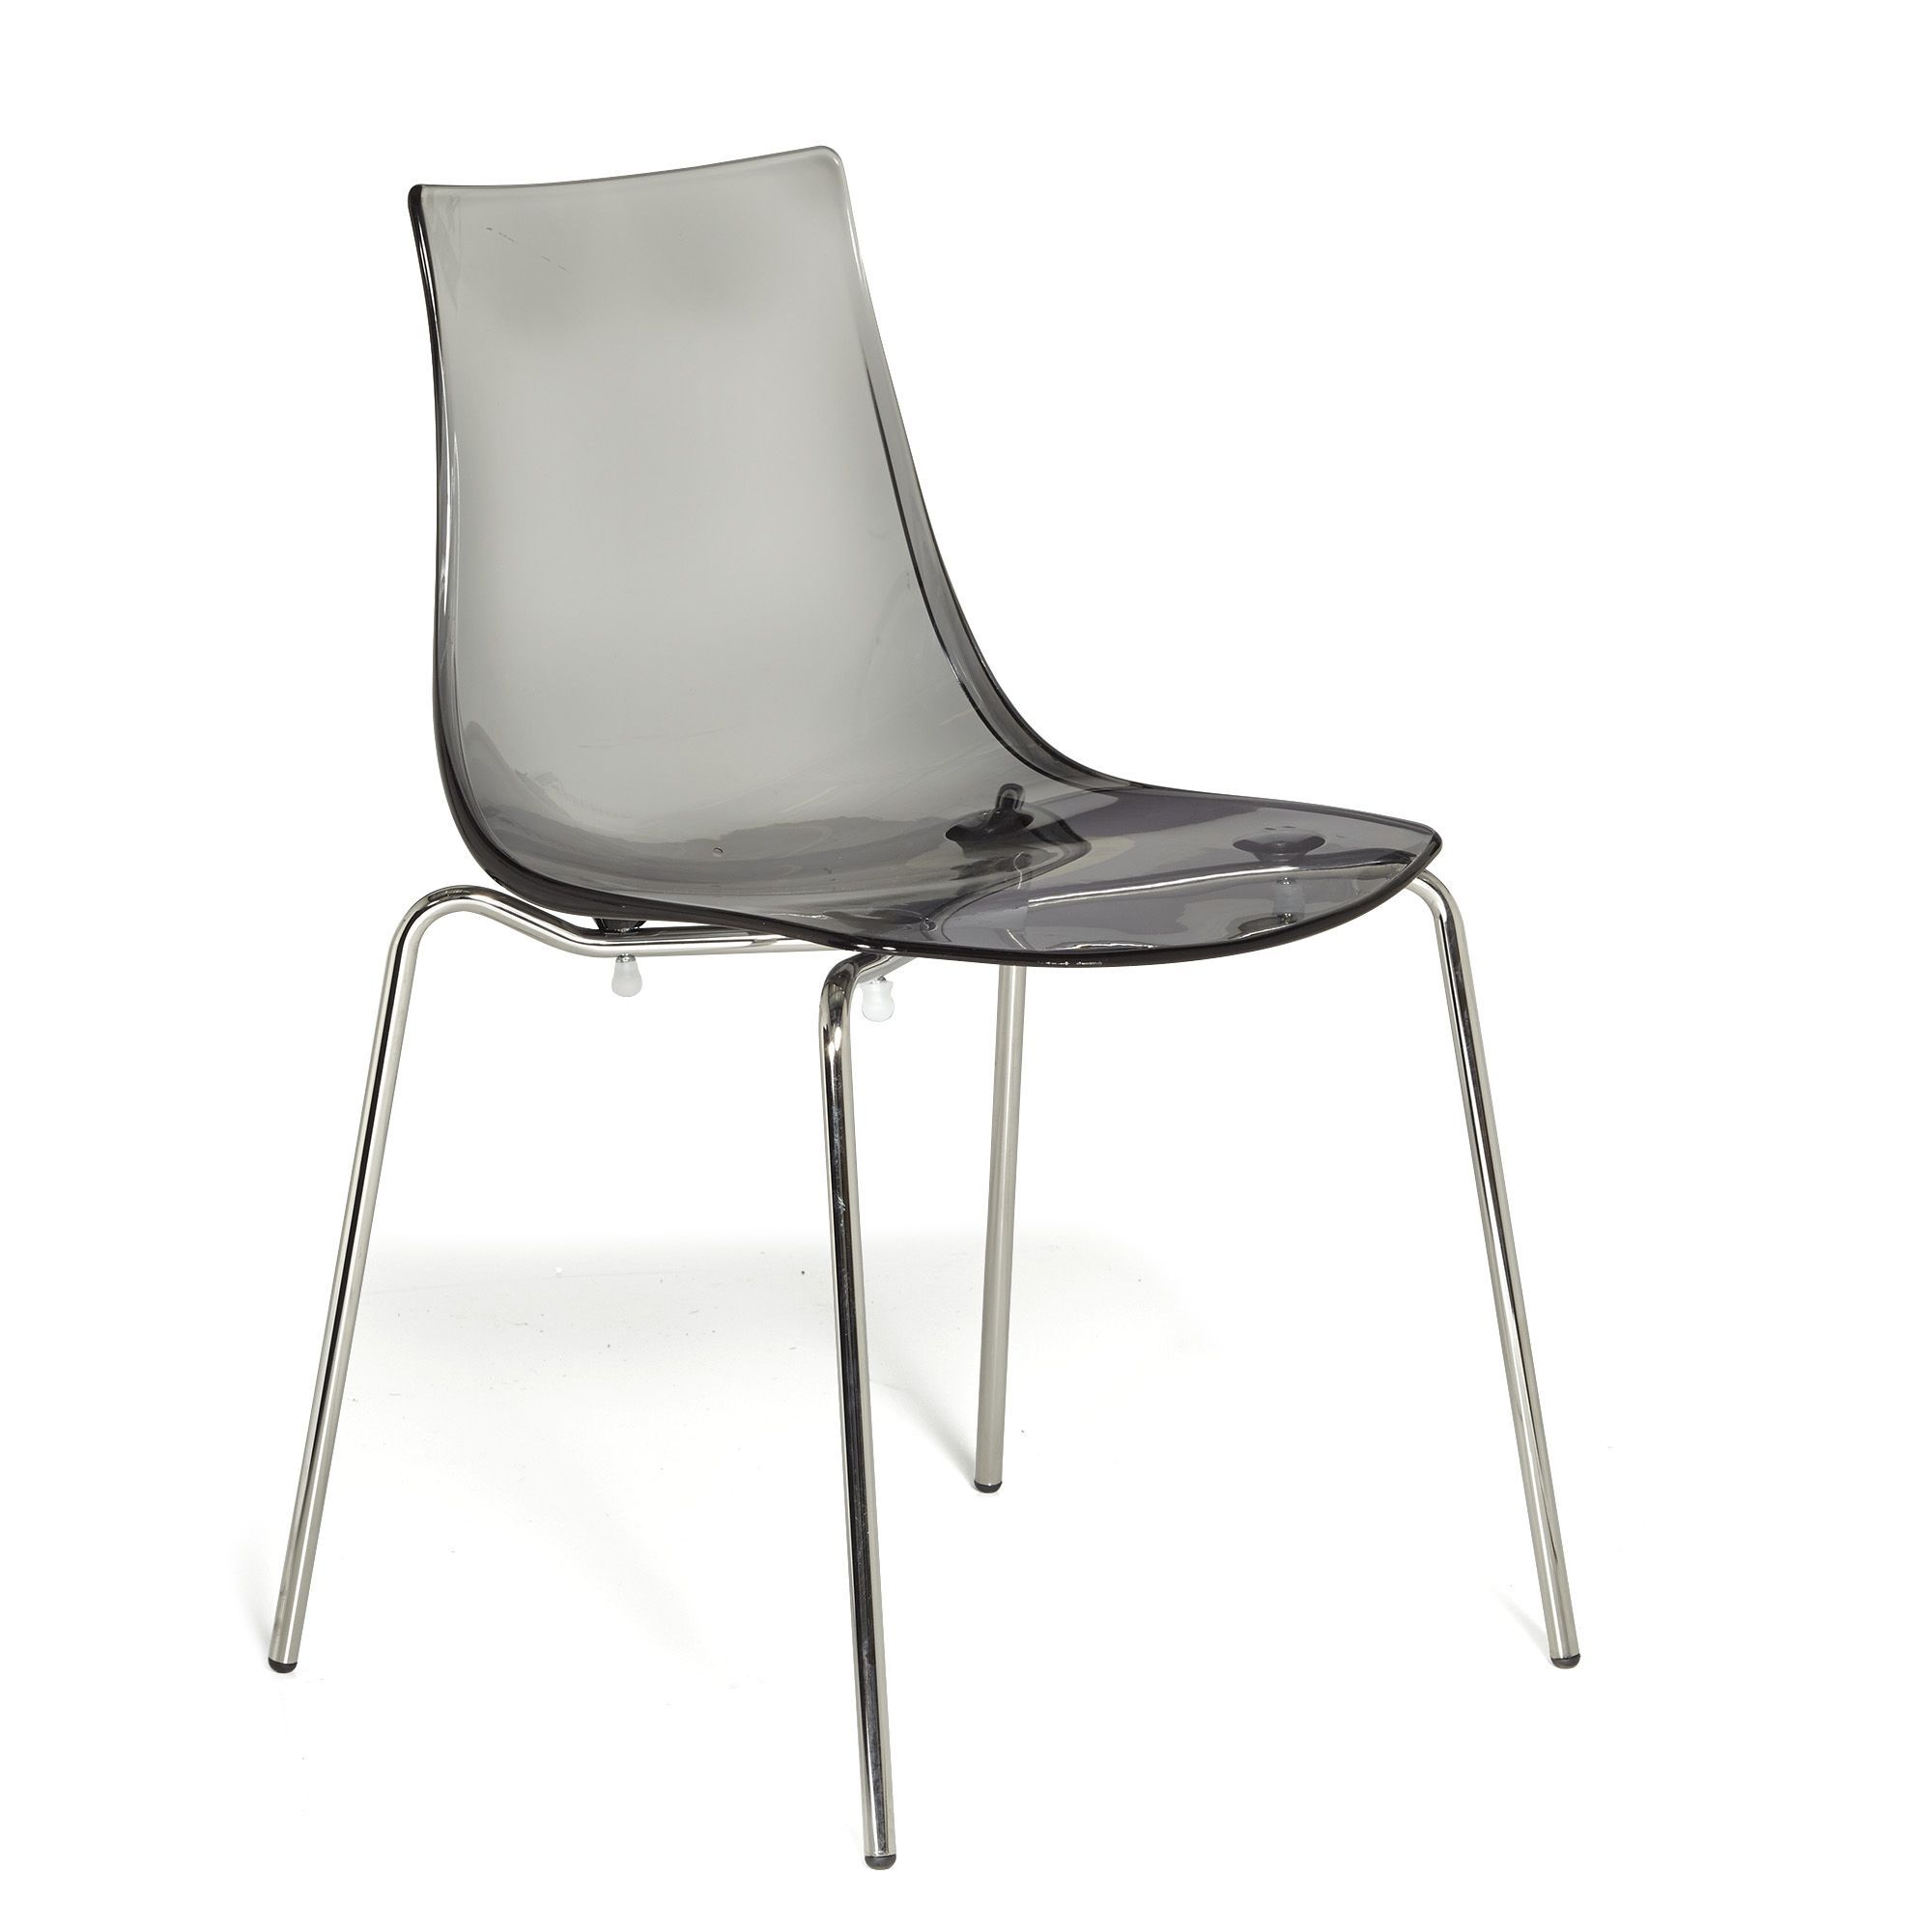 Chaise Empilable Transparente Gris Fum Transparent